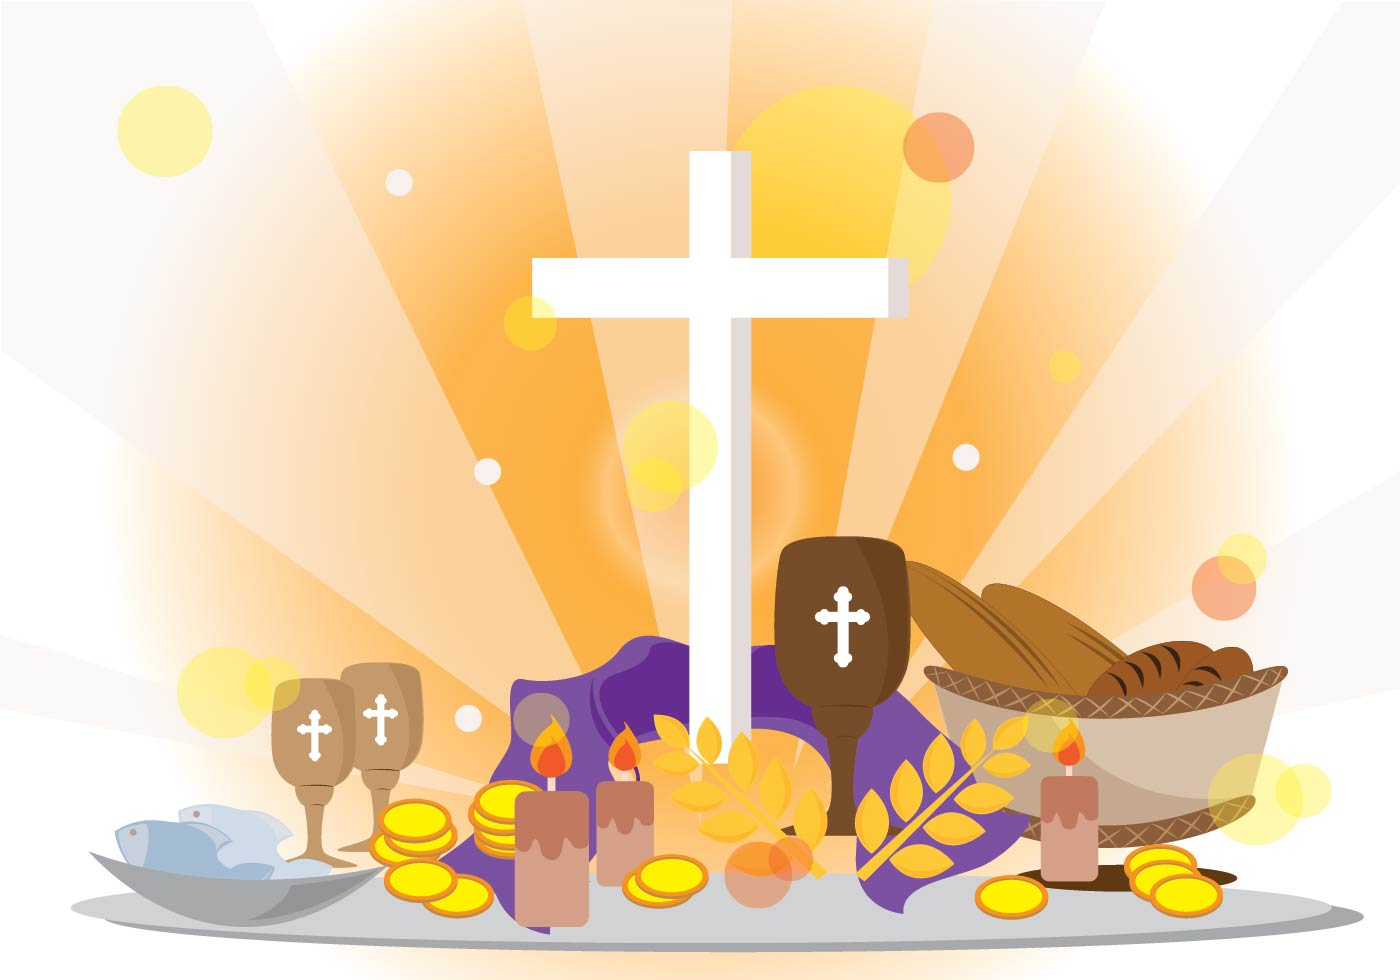 Lent catholic background download free vectors clipart graphics vector art - Wallpaper for lent season ...